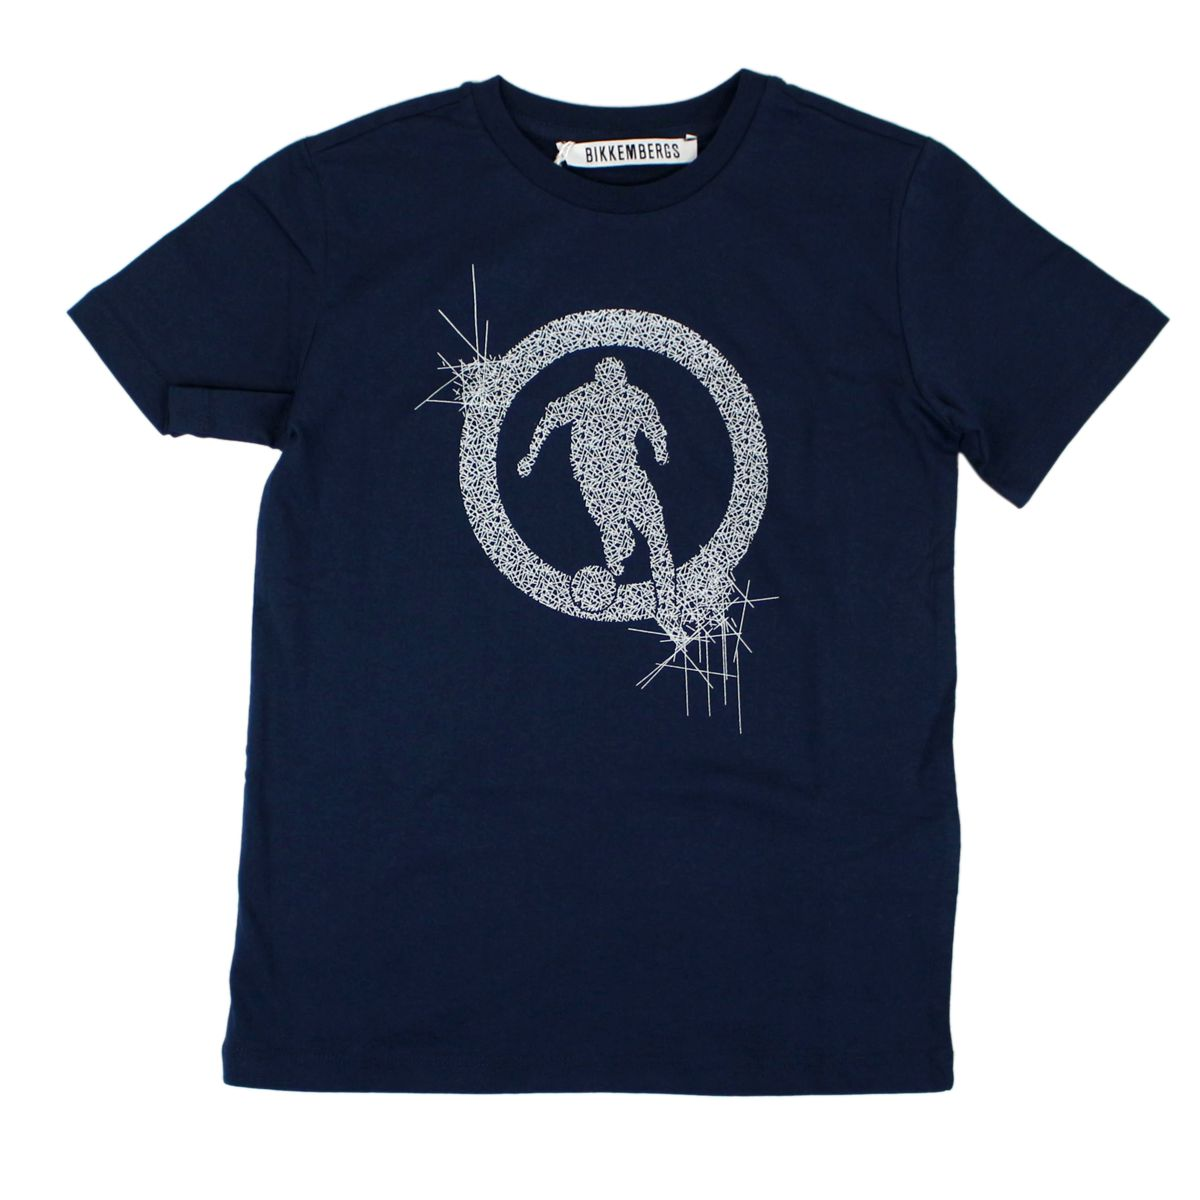 T-shirt with print Blue Bikkembergs